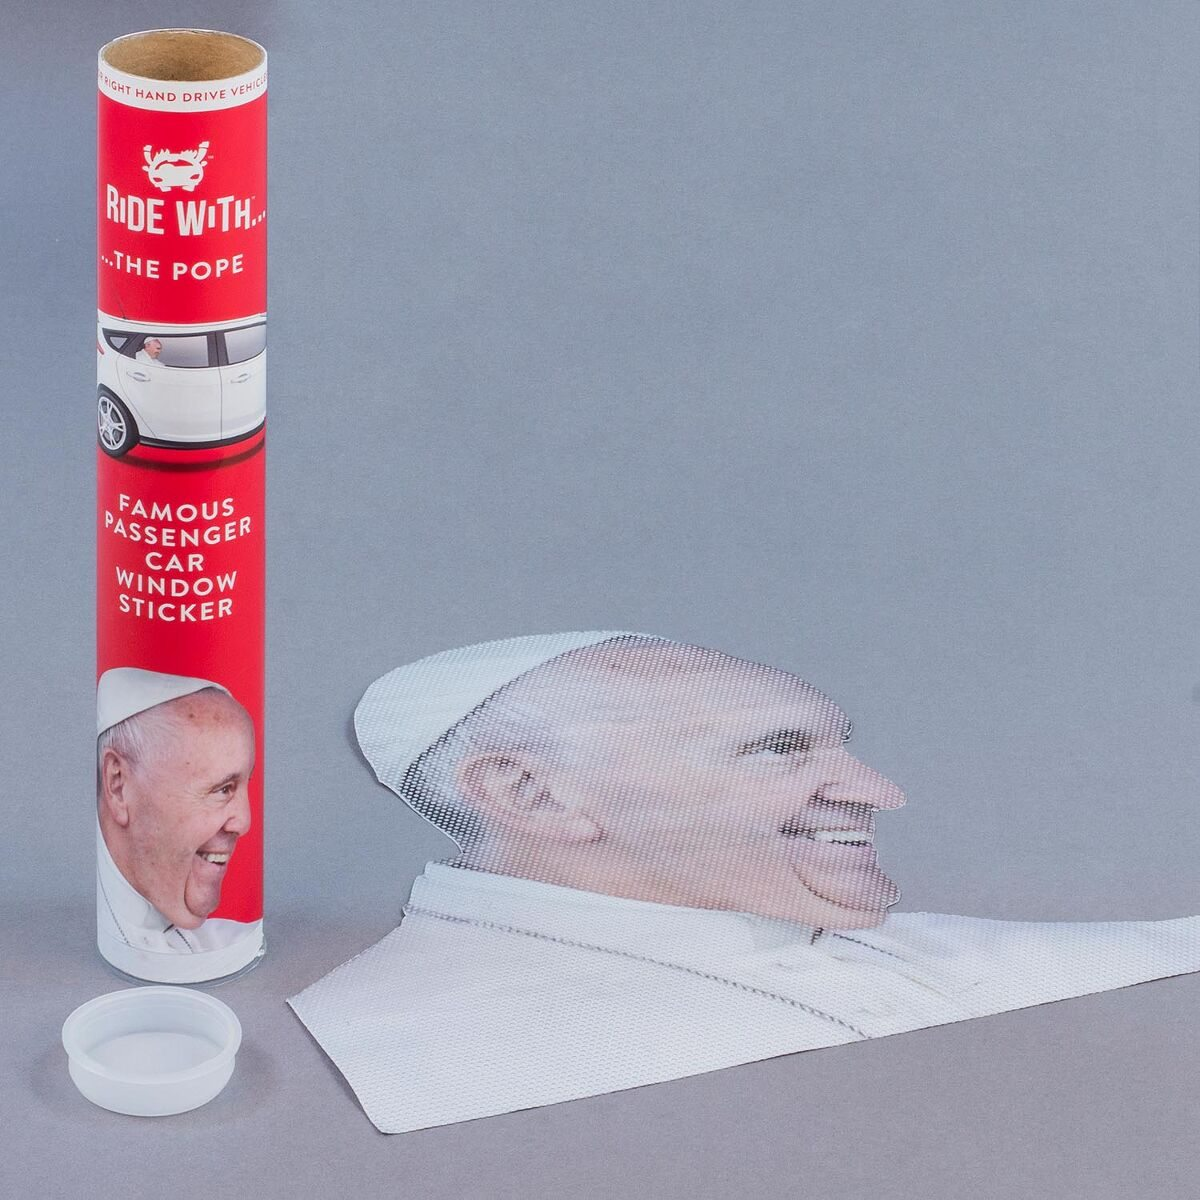 Ride With a The Pope Fenstersticker 'Papst'